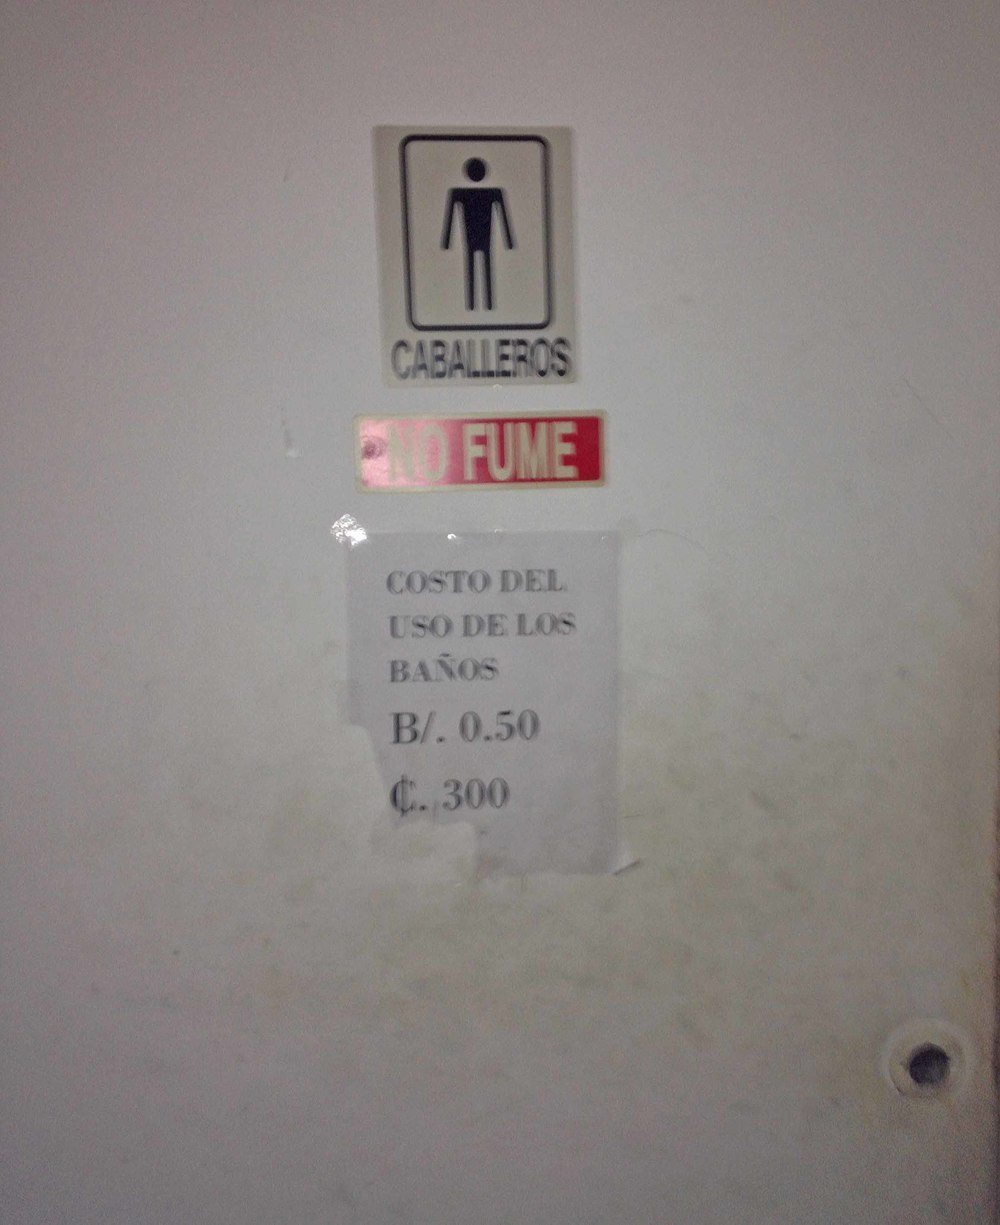 Men's restroom: $.50 or 300 colones - pay at the table in the hall